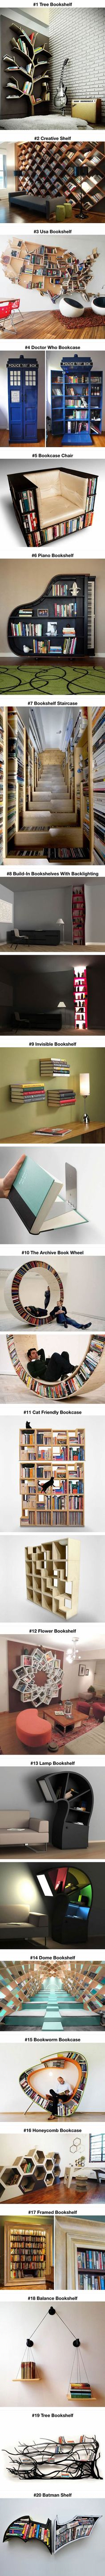 Probably The Most Creative Bookshelves Ever